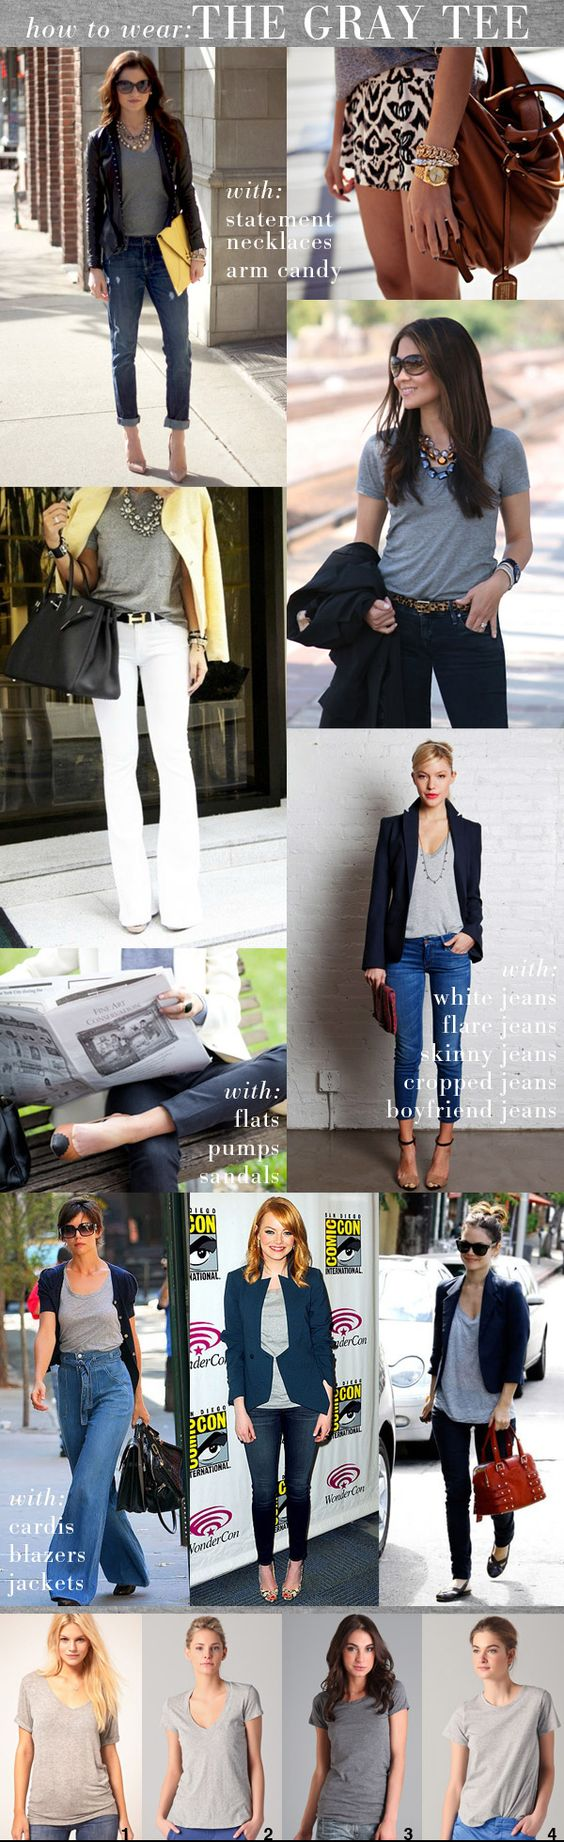 small shop: how to wear the gray tee